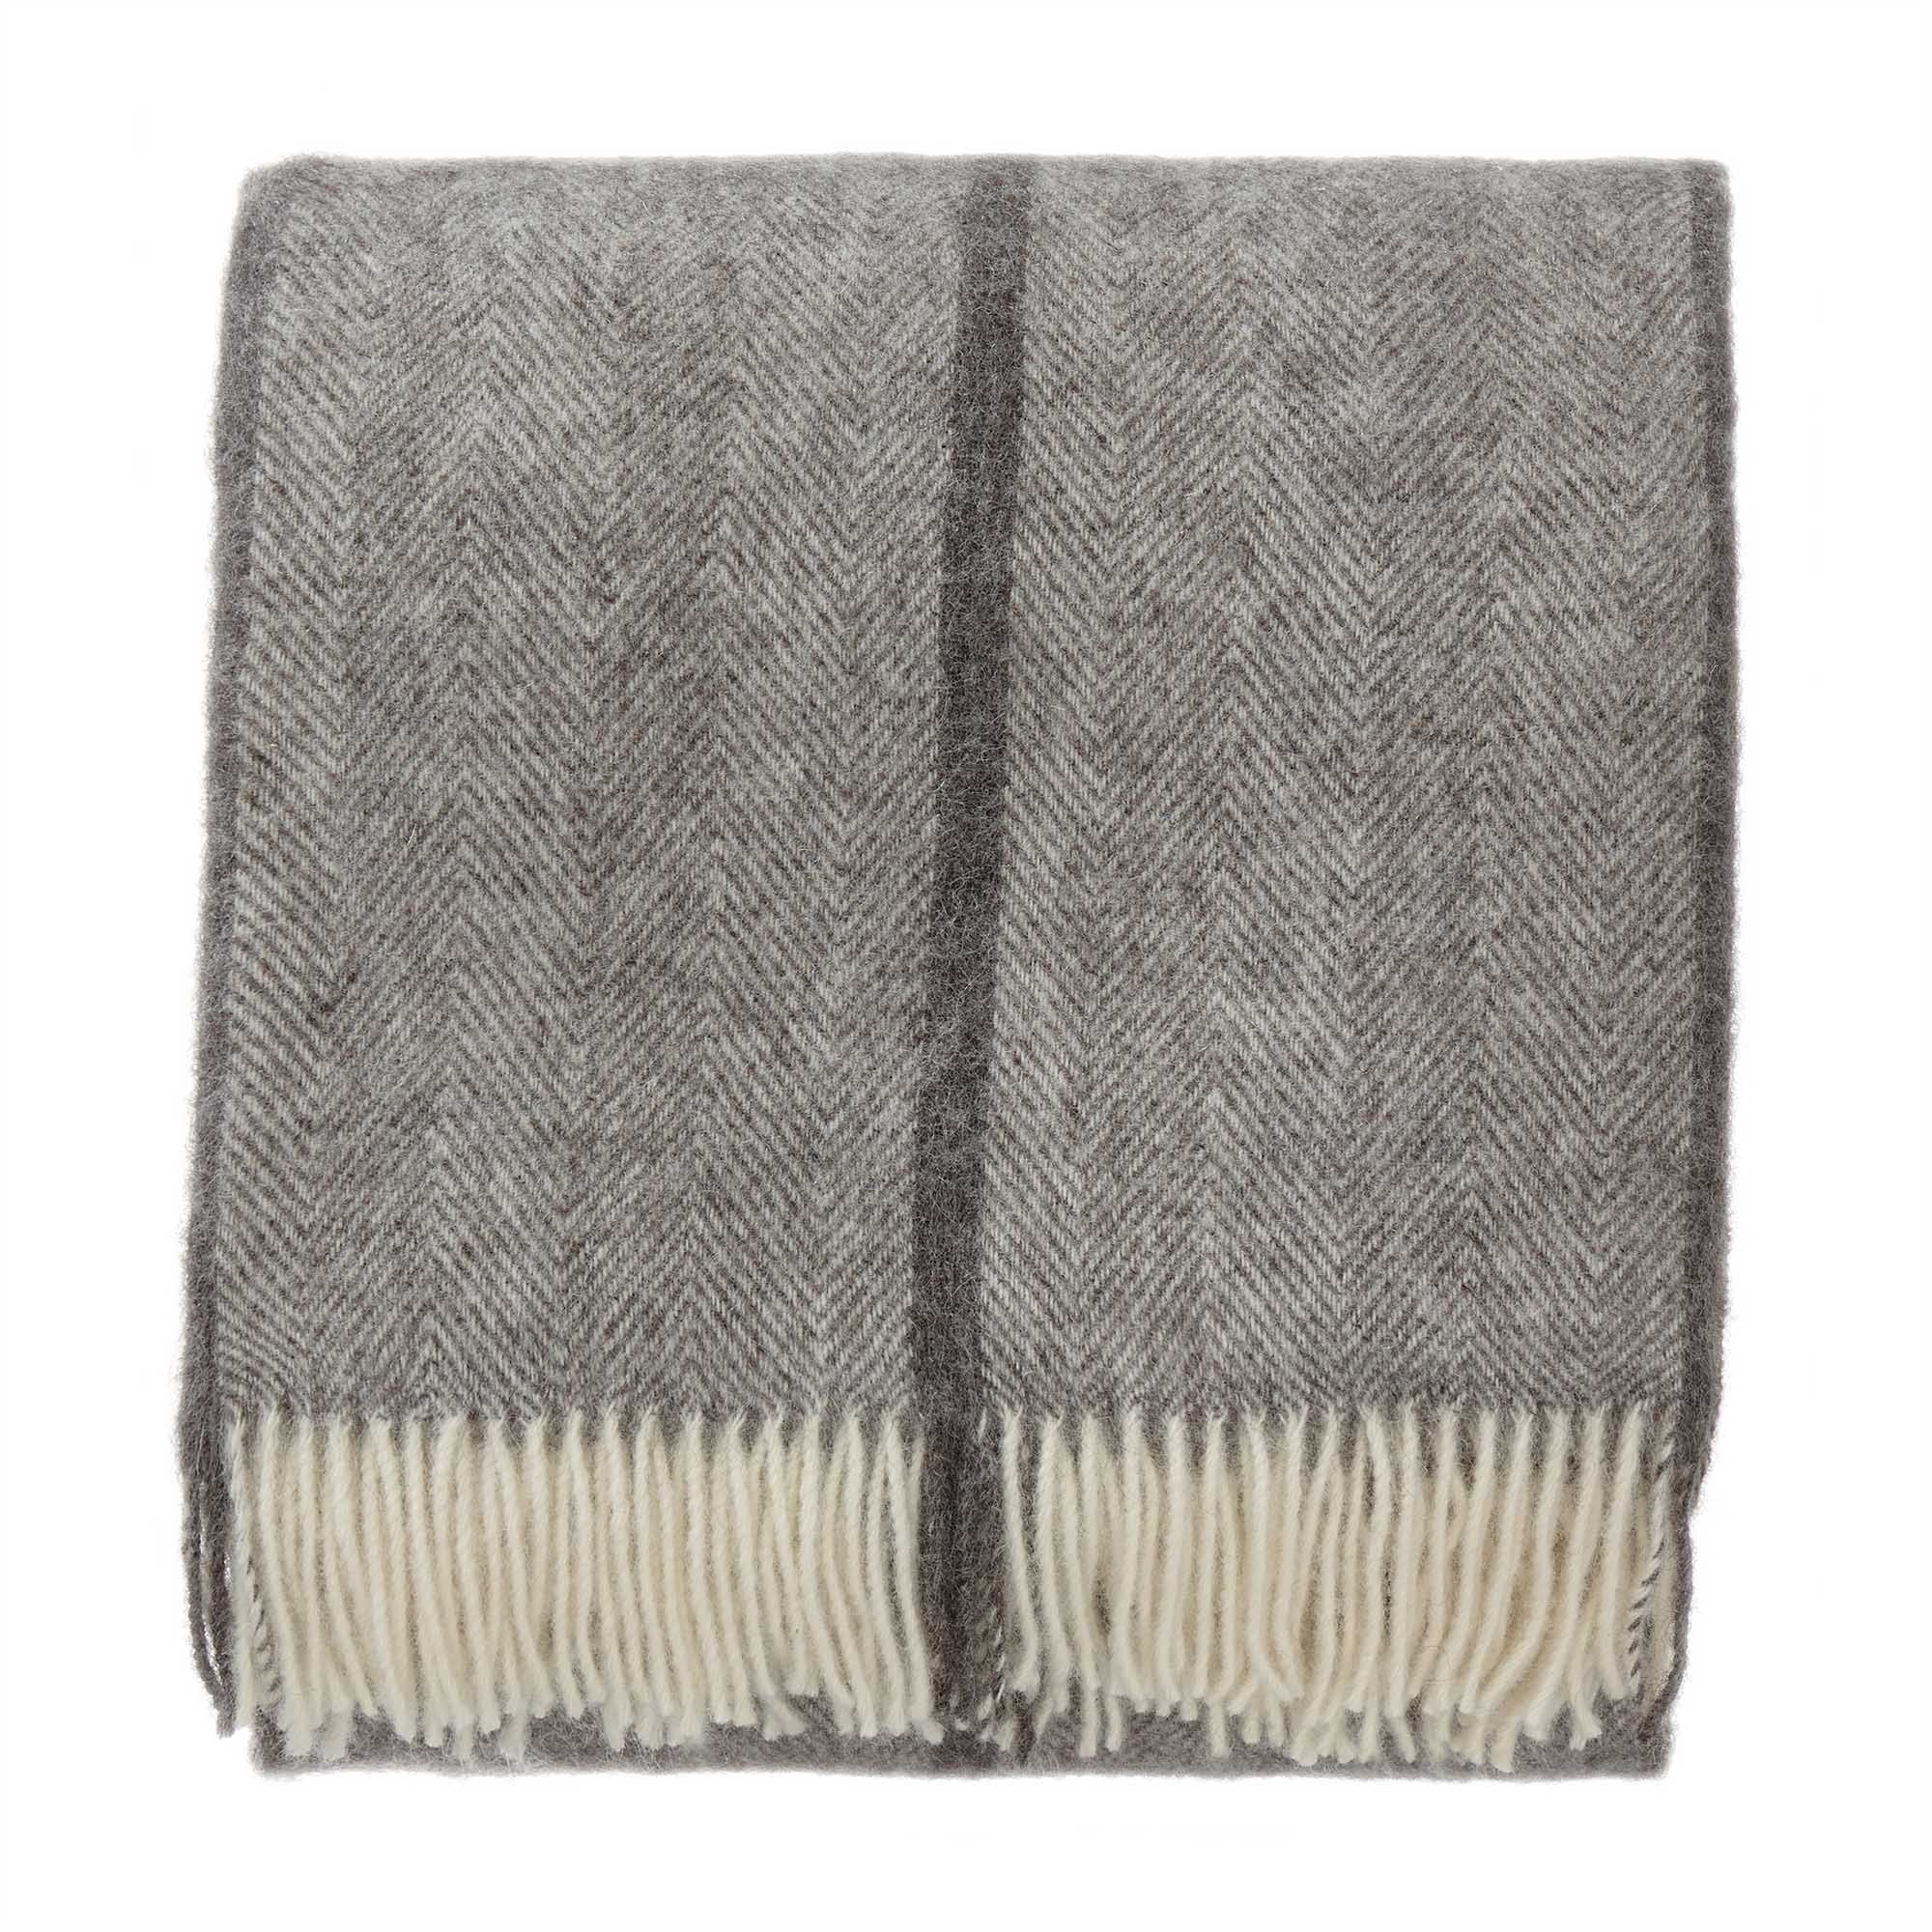 Saskatoon blanket, charcoal & grey & cream, 100% wool